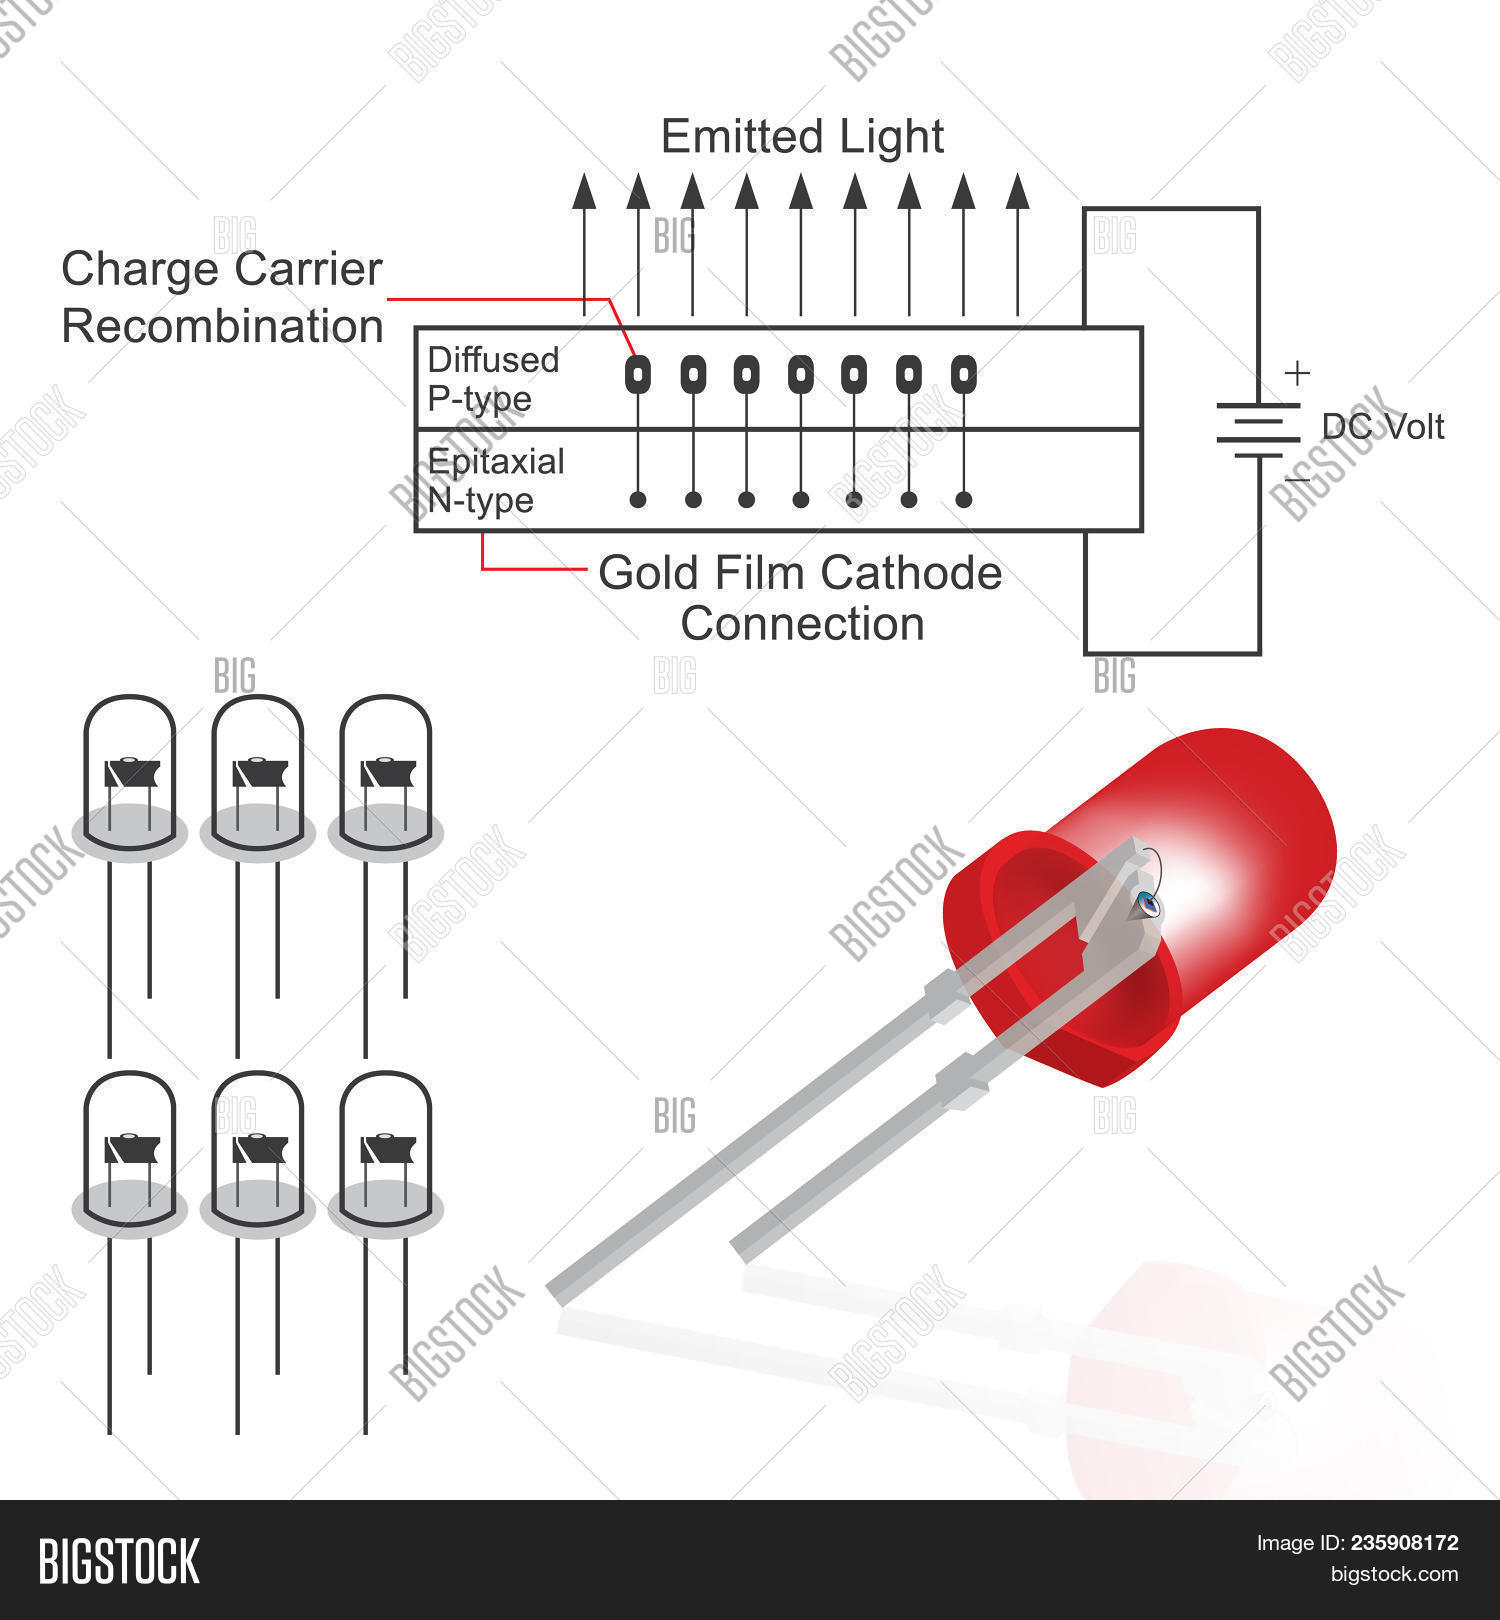 hight resolution of light emitting diode led structure education info graphic